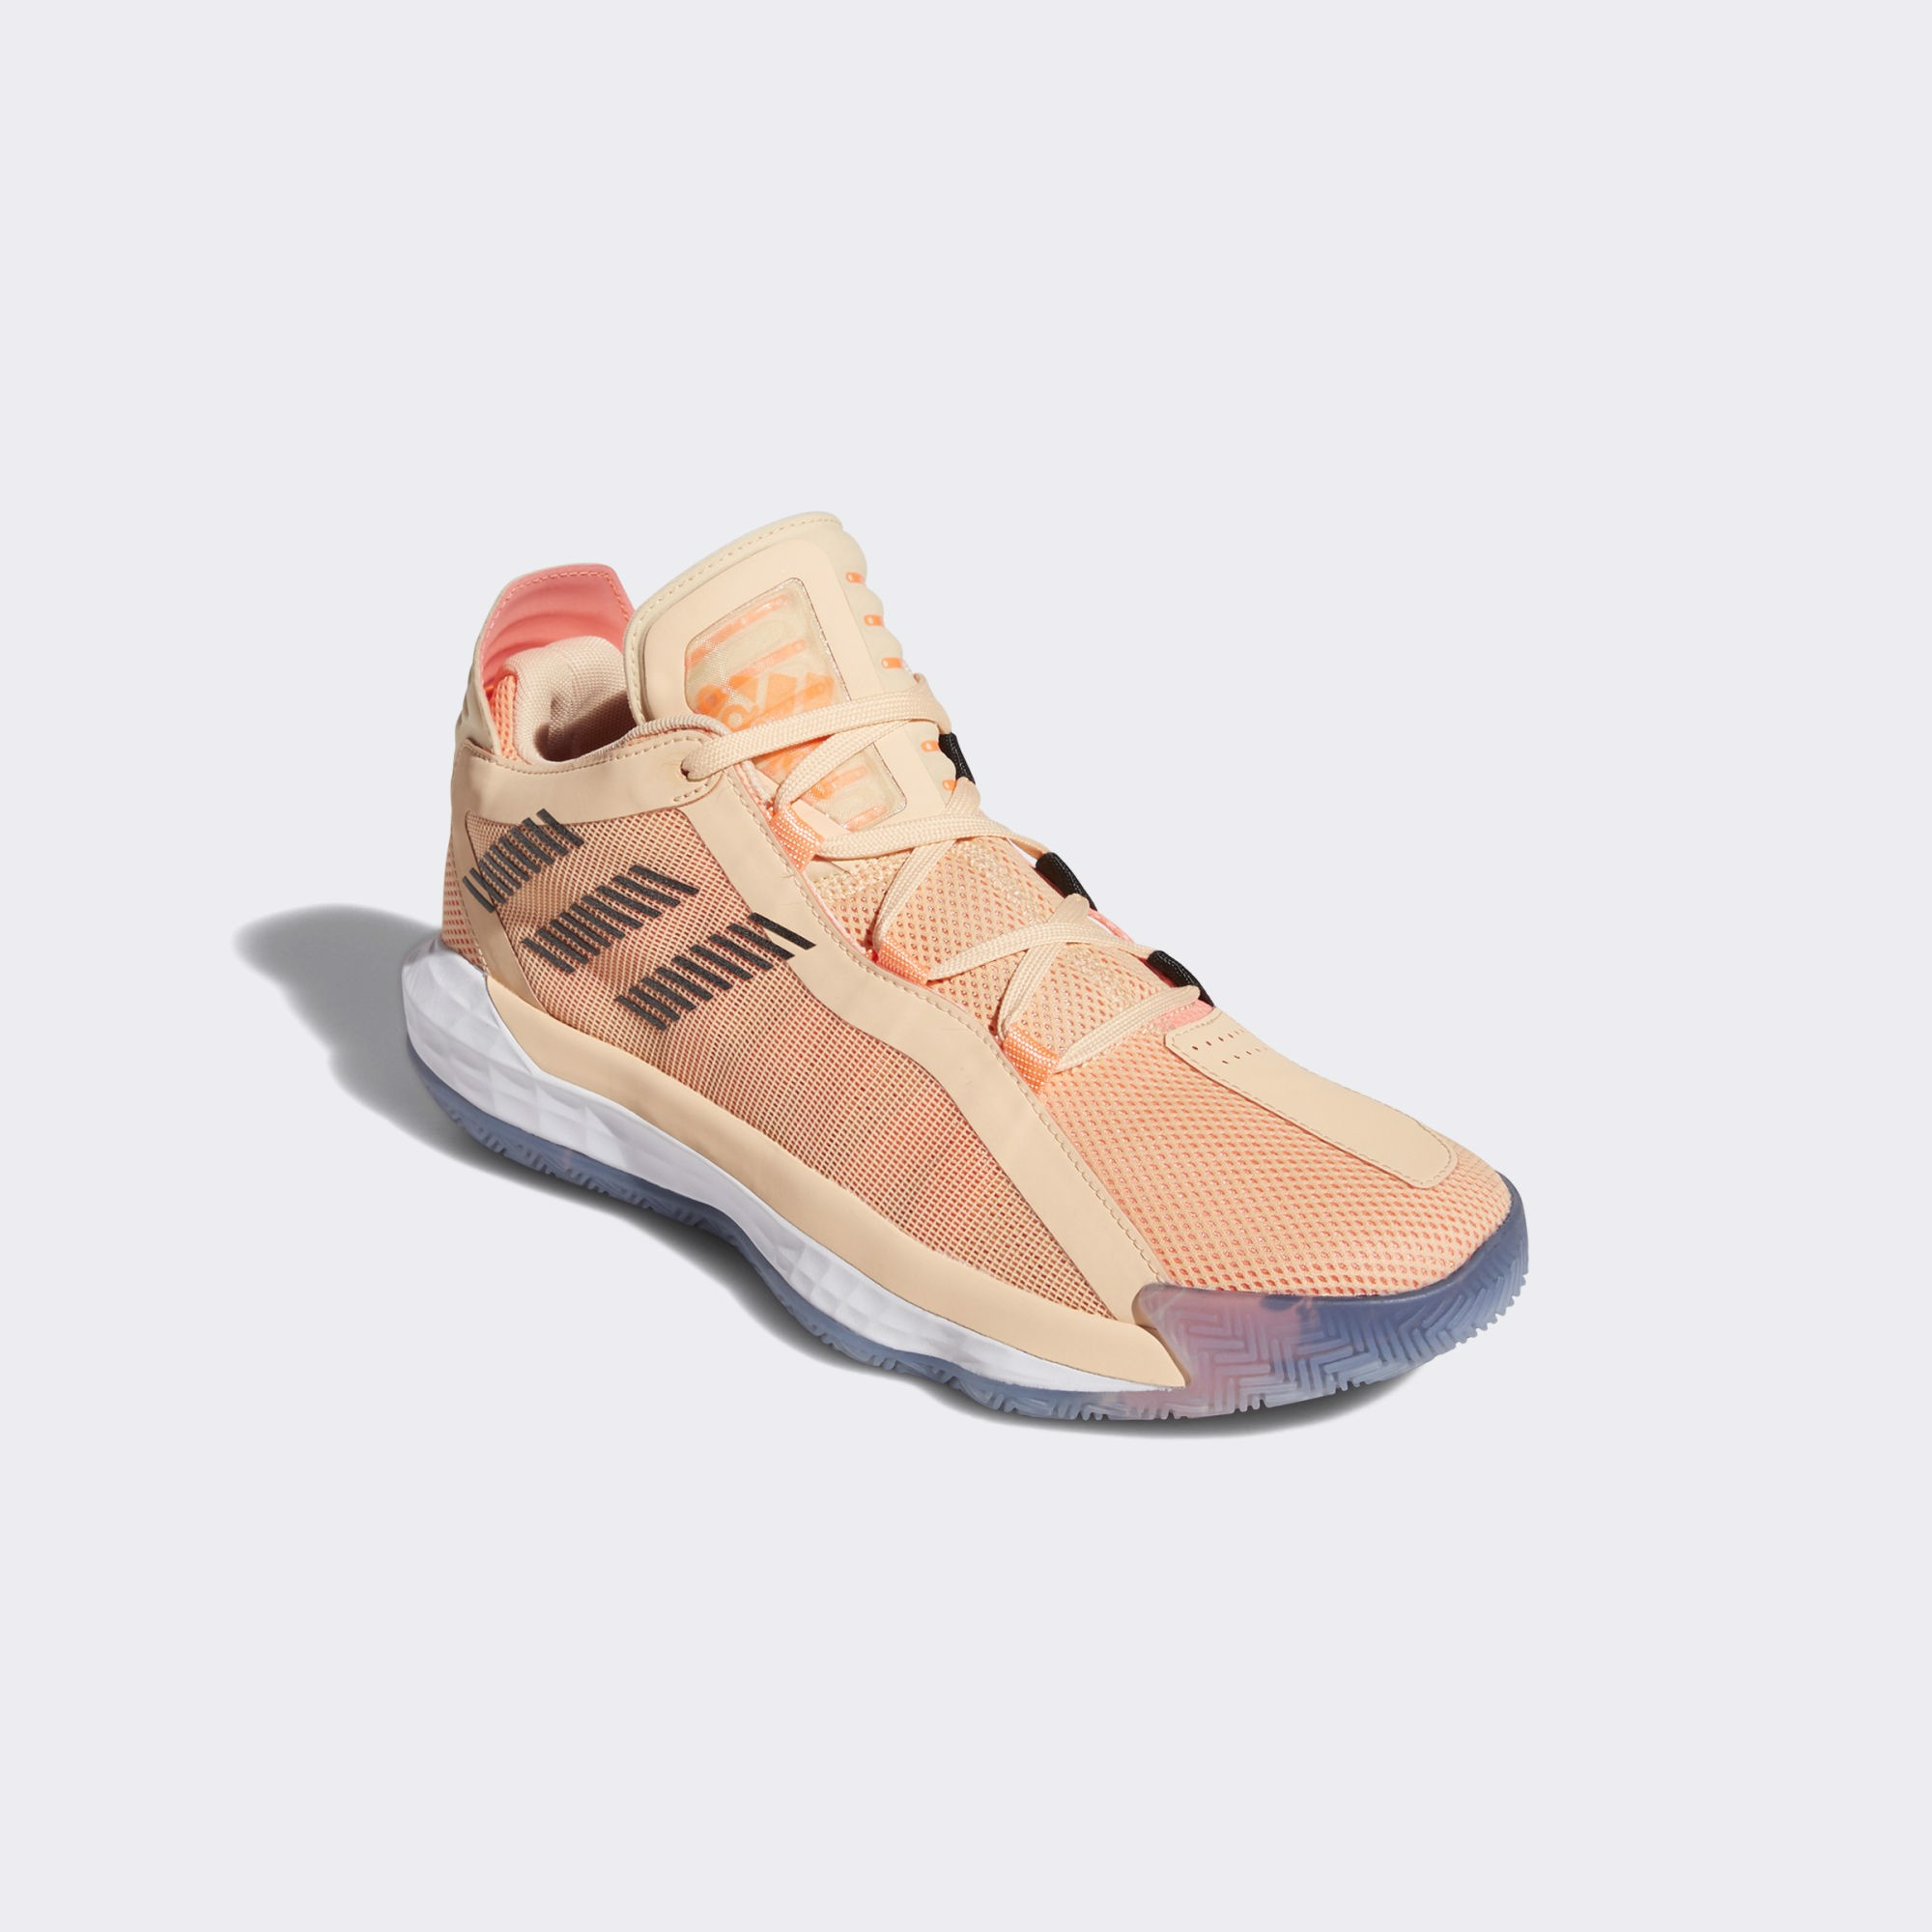 adidas Dame 6 International Women's Day